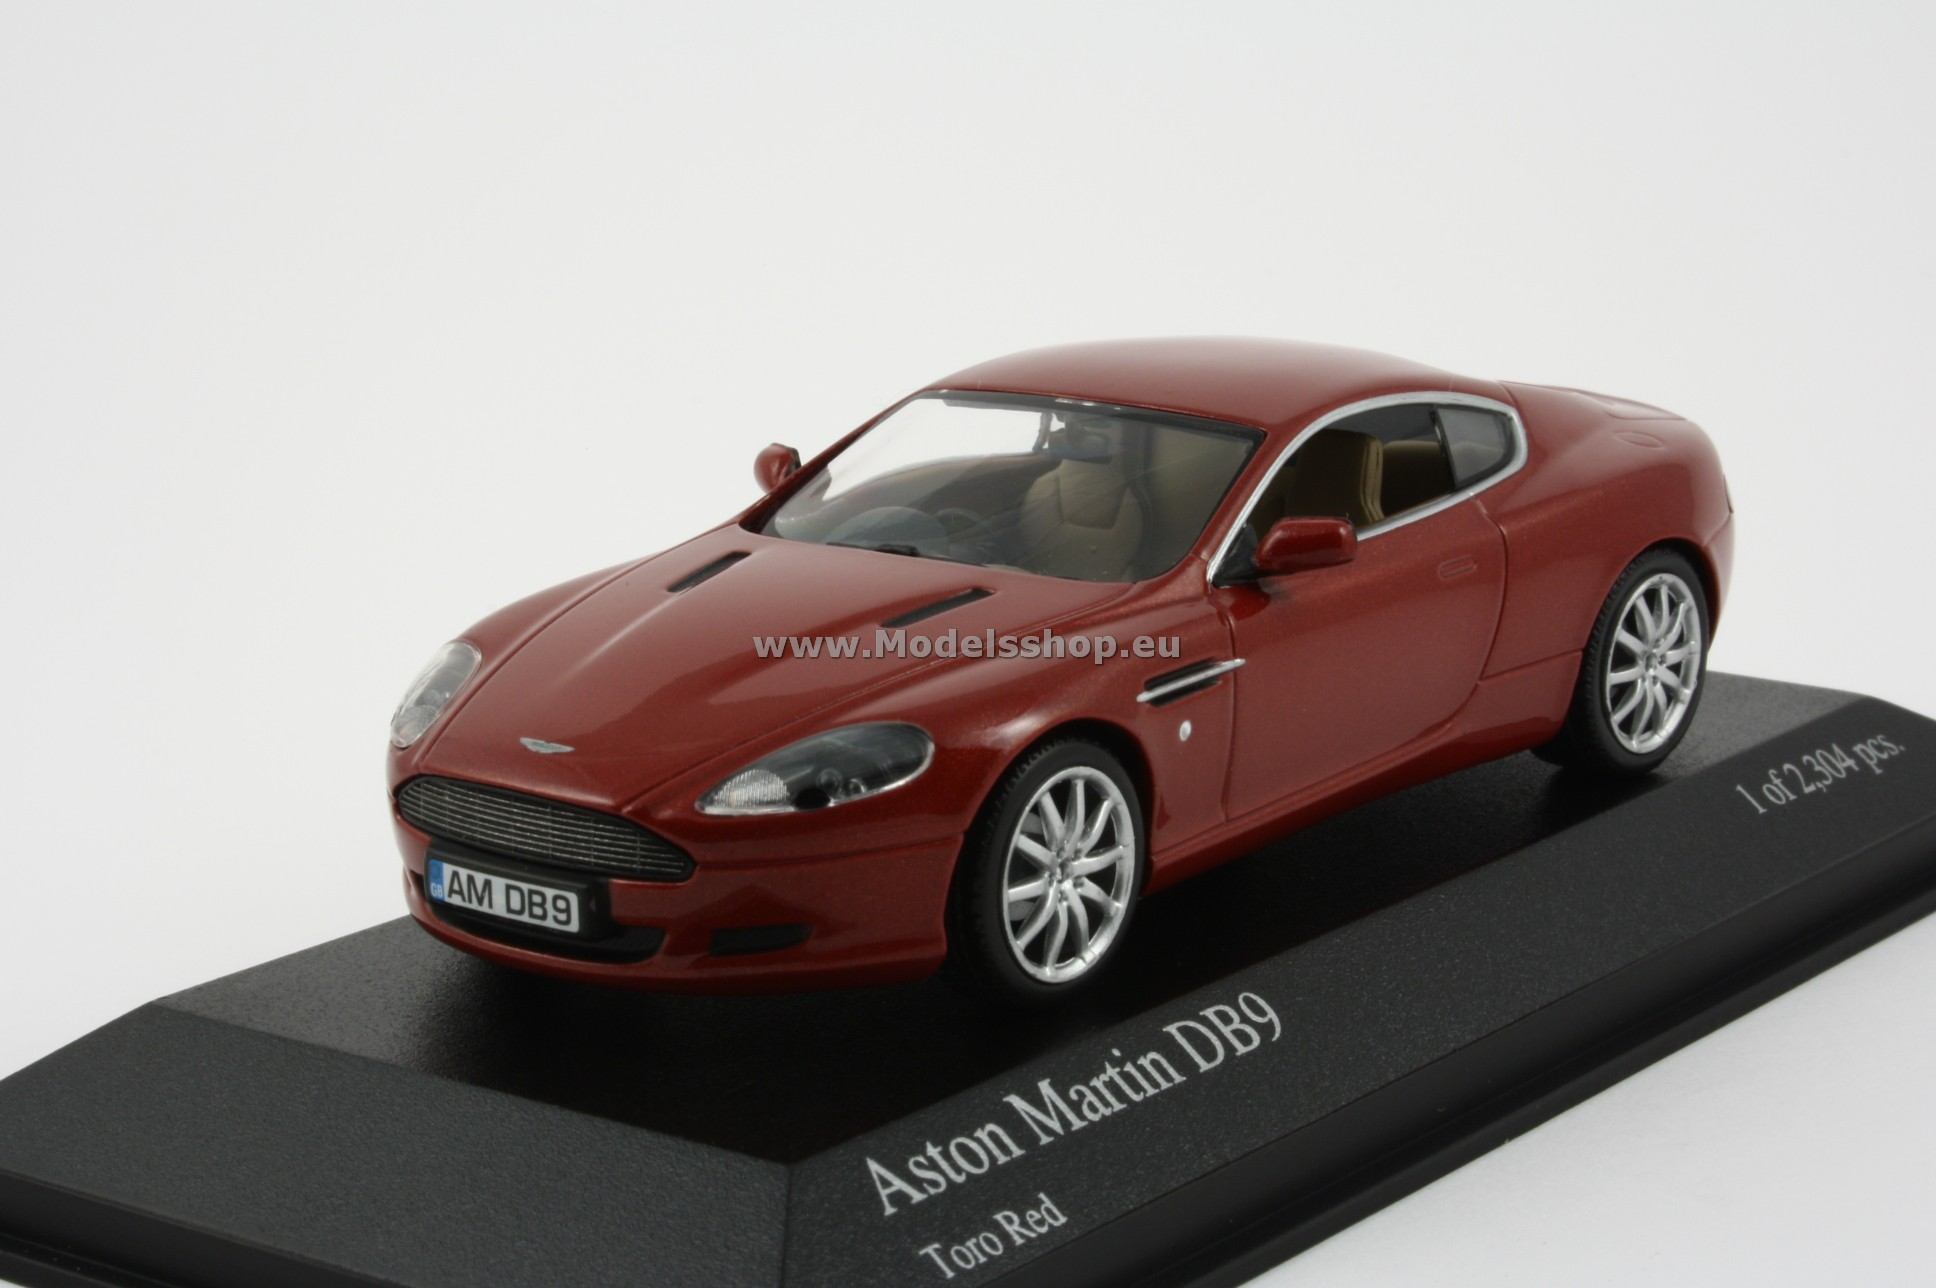 Aston Martin Db9 2003 Red Metallic